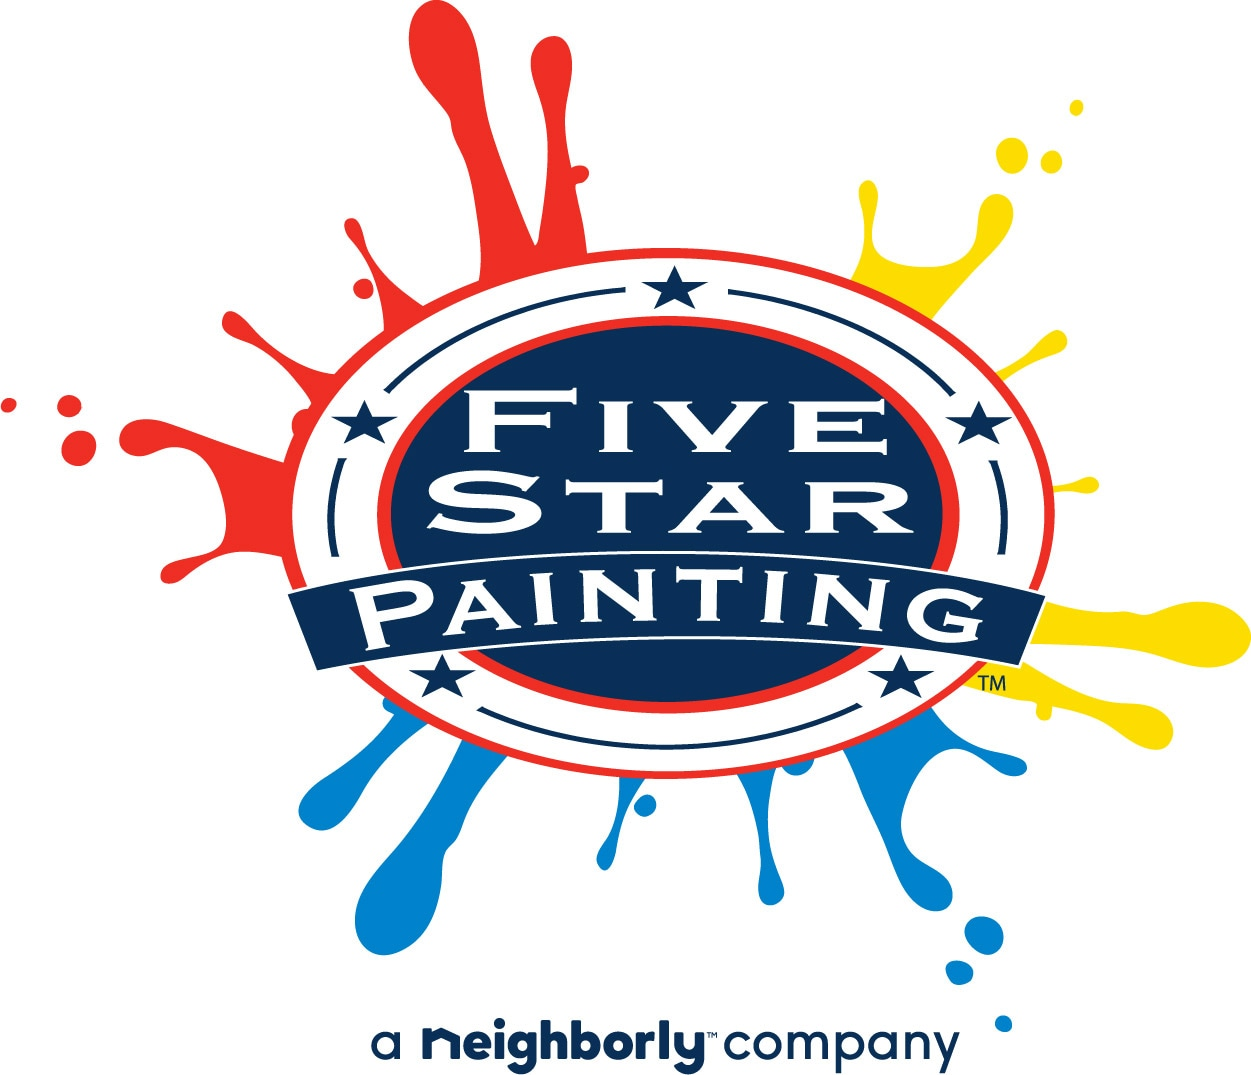 Five Star Painting of Pinellas County